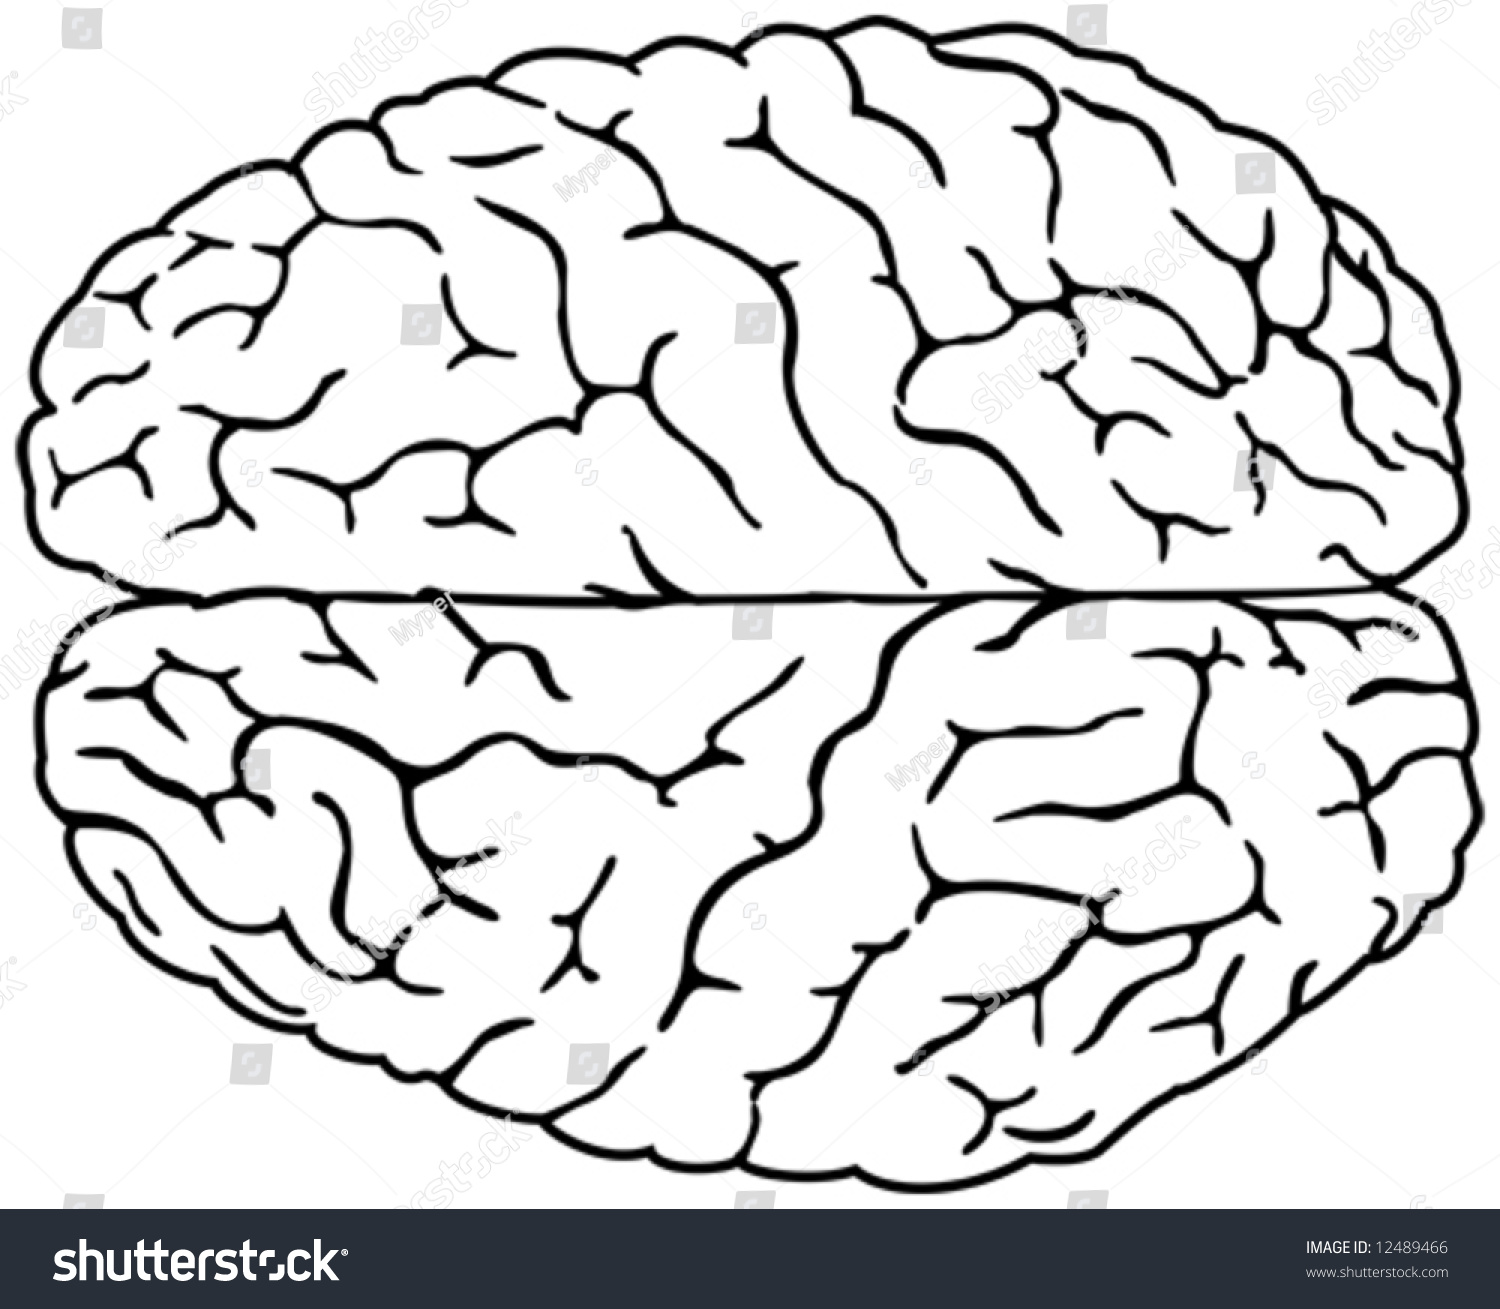 Line Drawing Brain : Simple brain drawing stock vector shutterstock